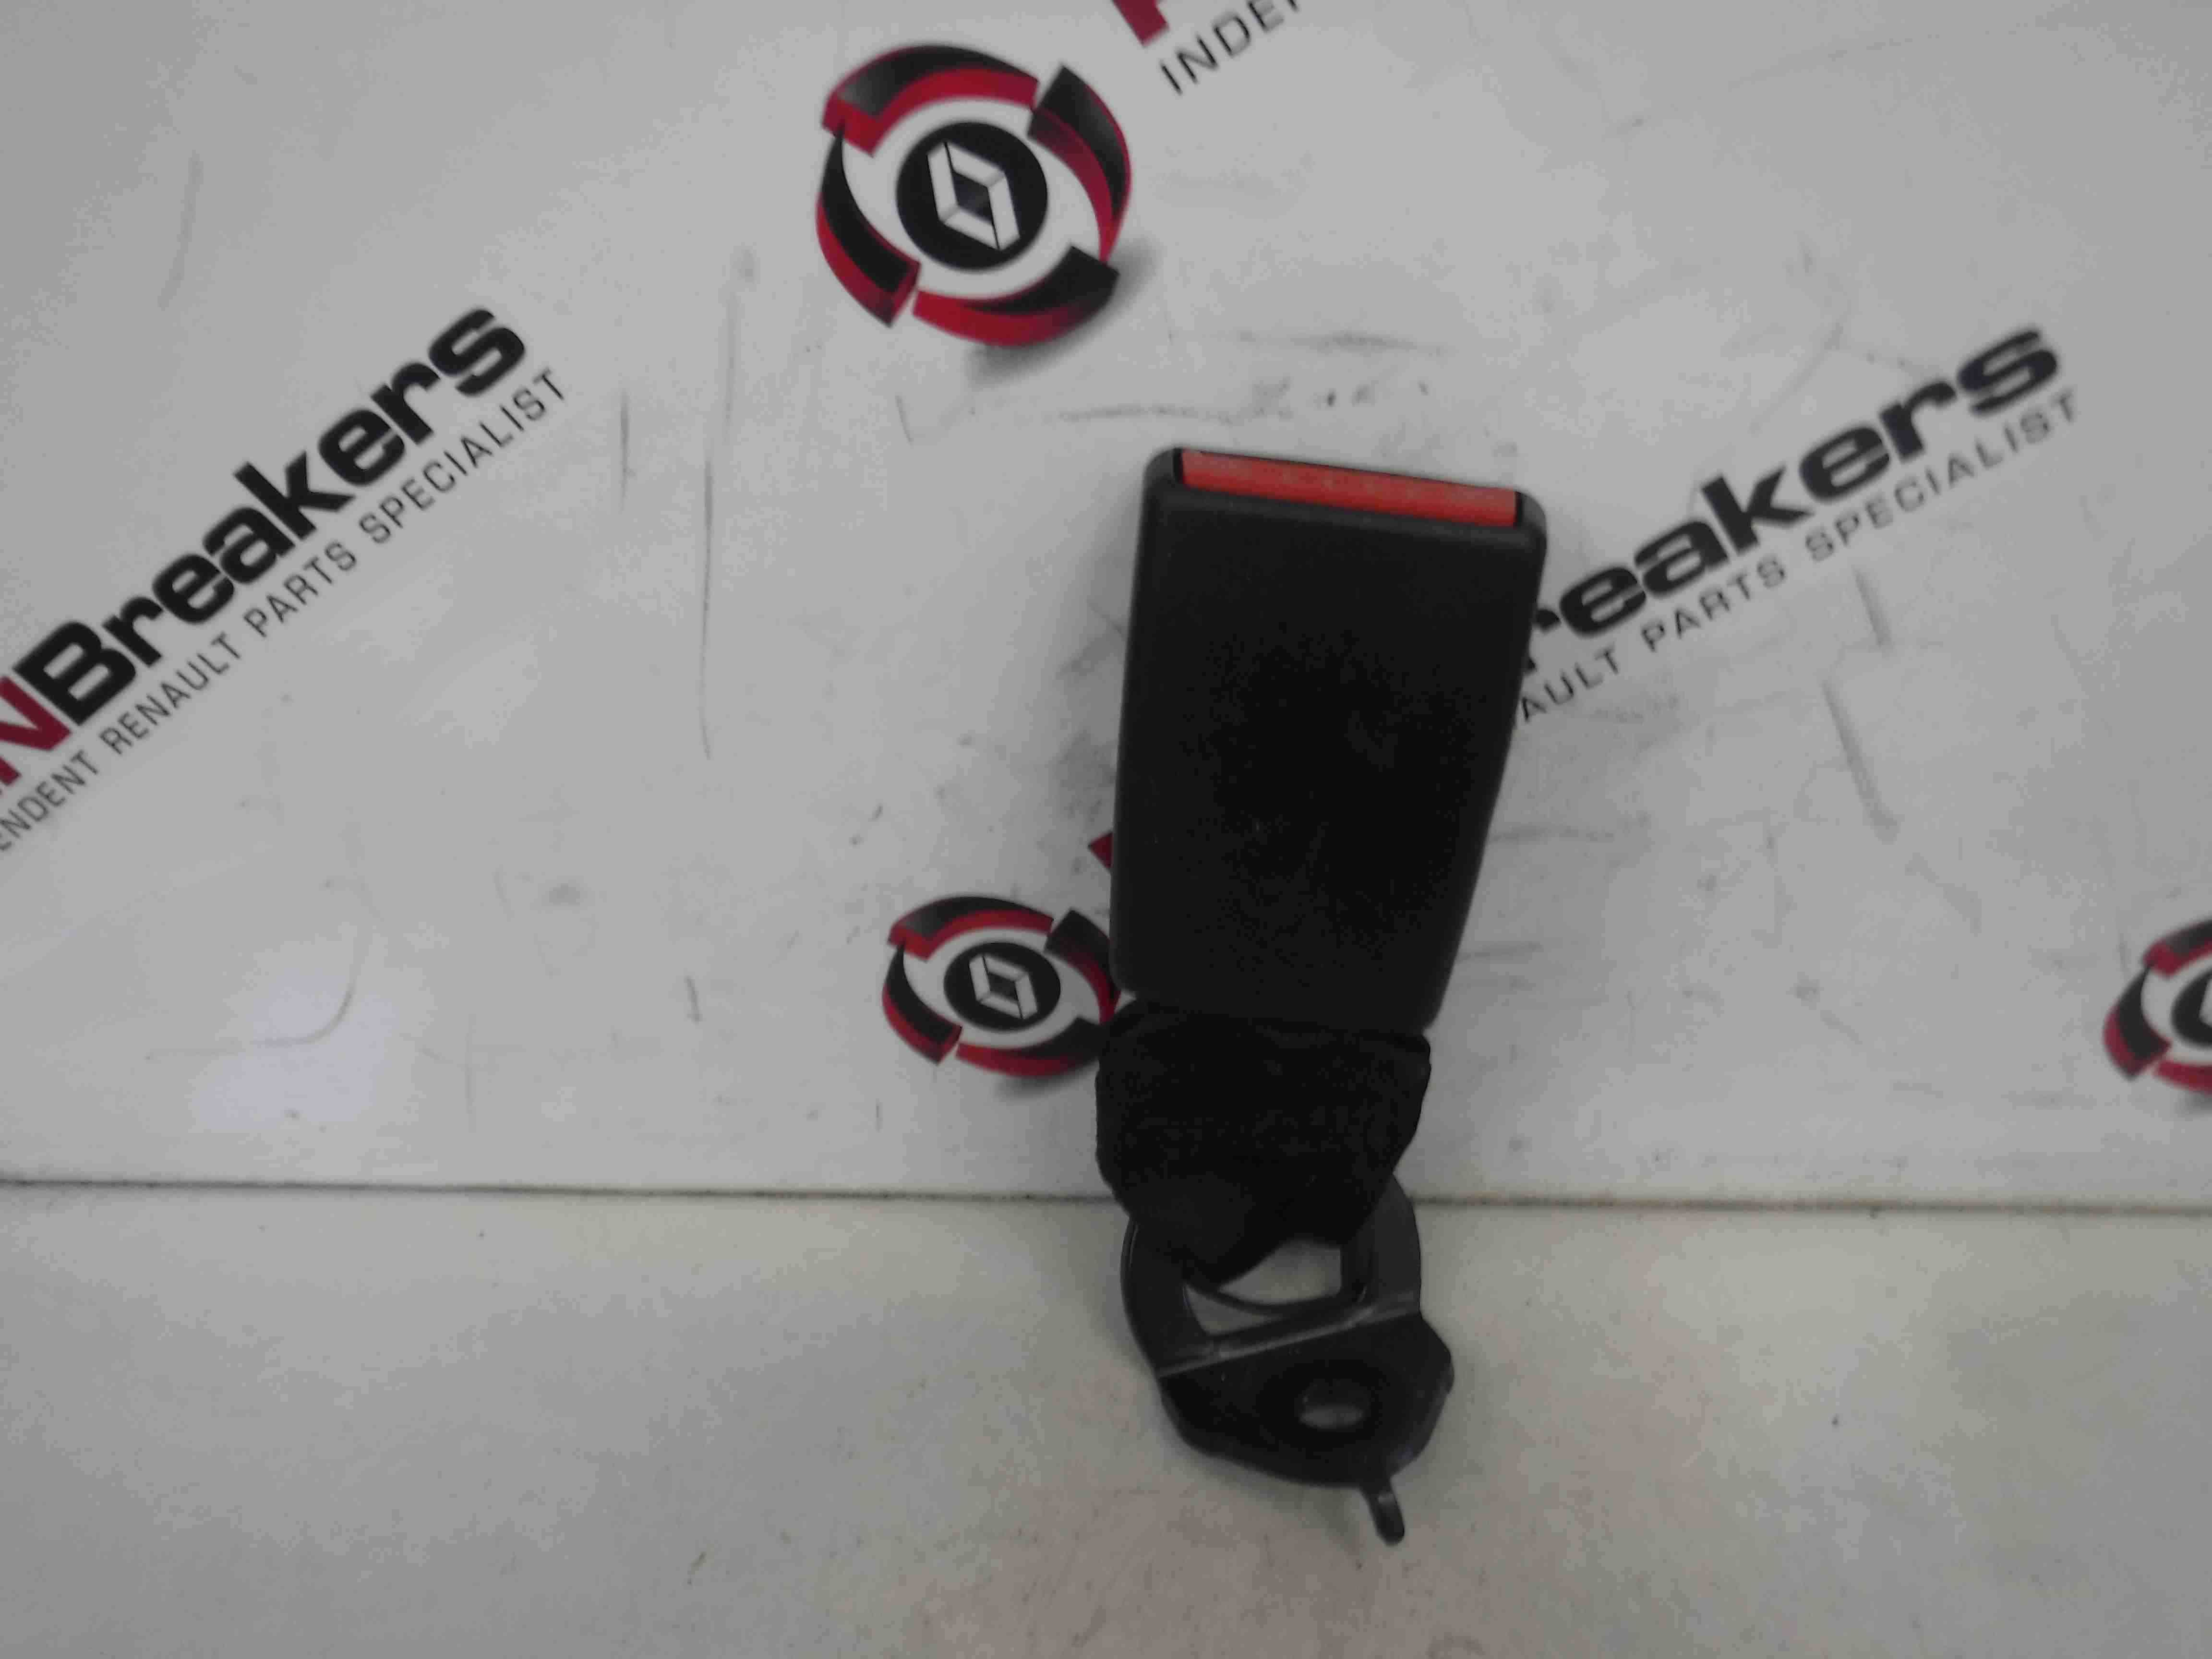 Renault Twingo 2007-2011 Passenger NSR Rear Seat Buckle Clip Anchor Red